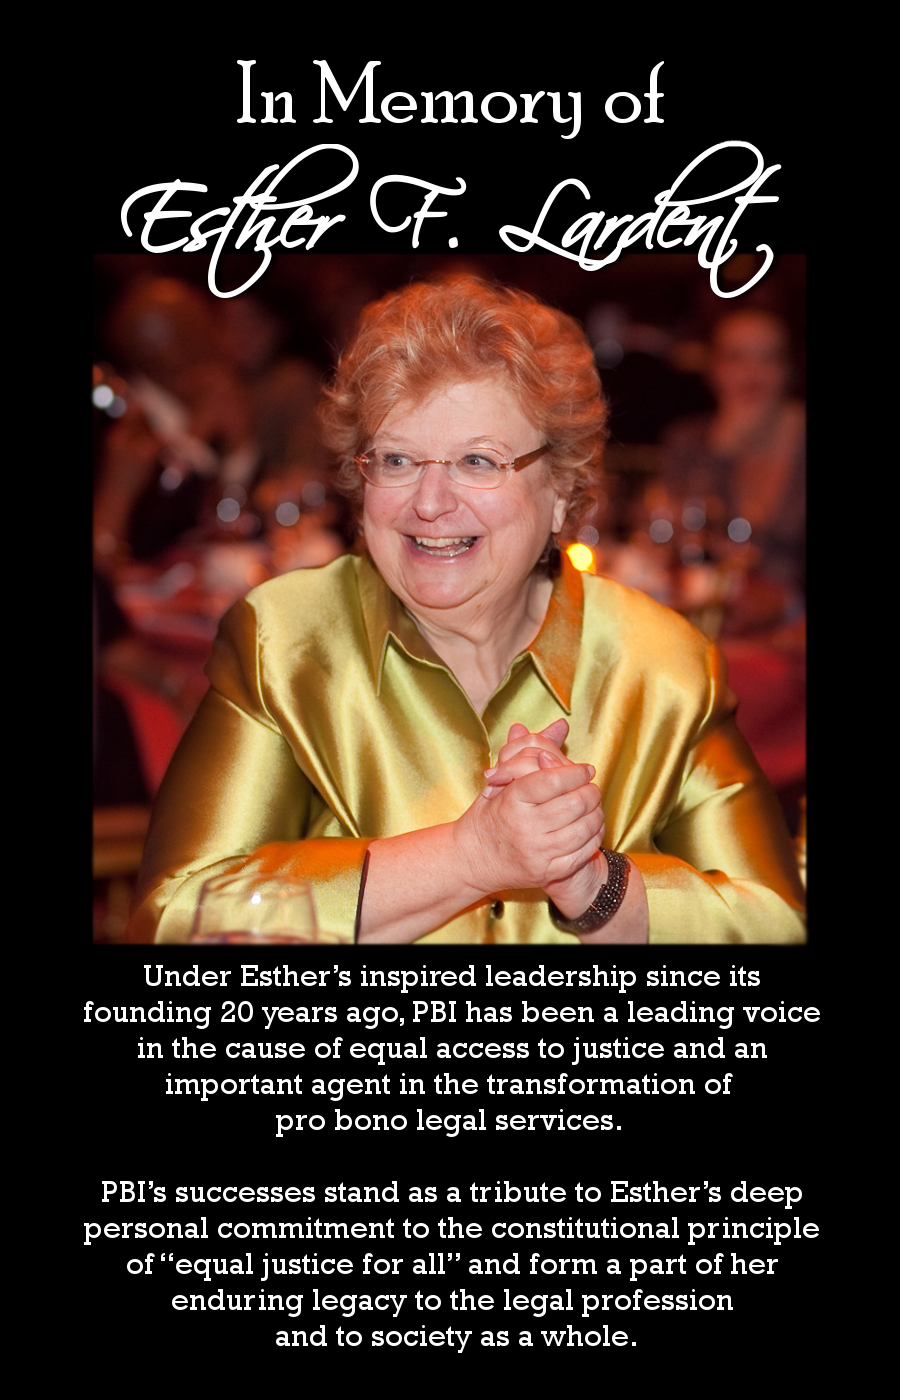 In Memory of Esther F. Lardent